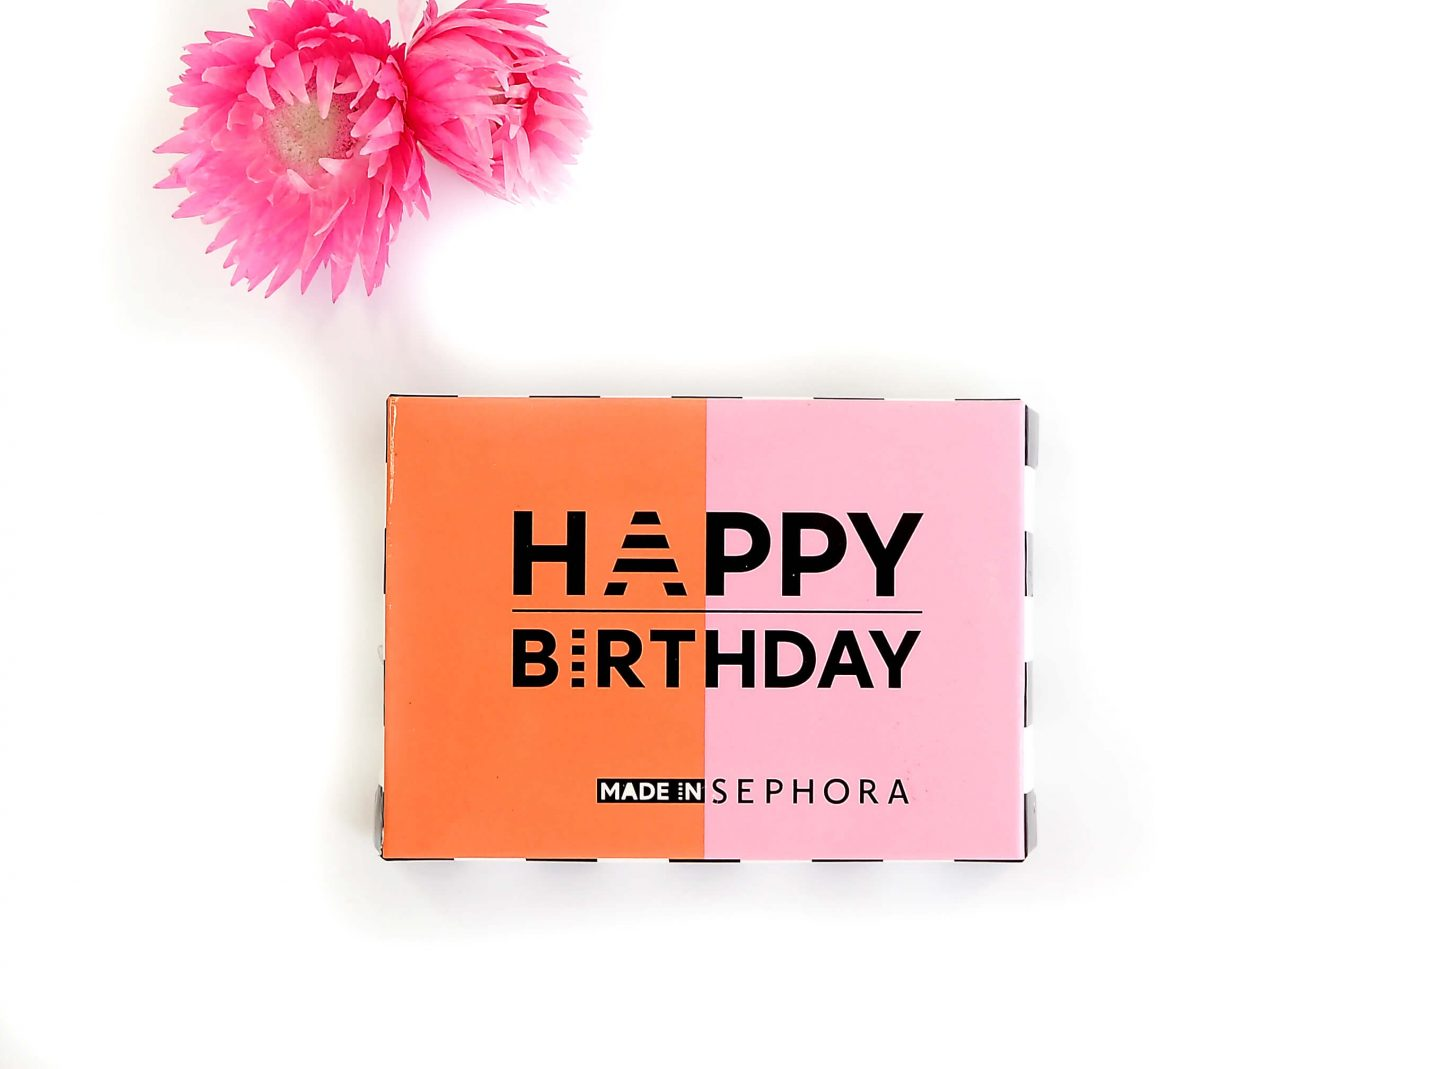 Happy Birthday, prezent od perfumerii SEPHORA